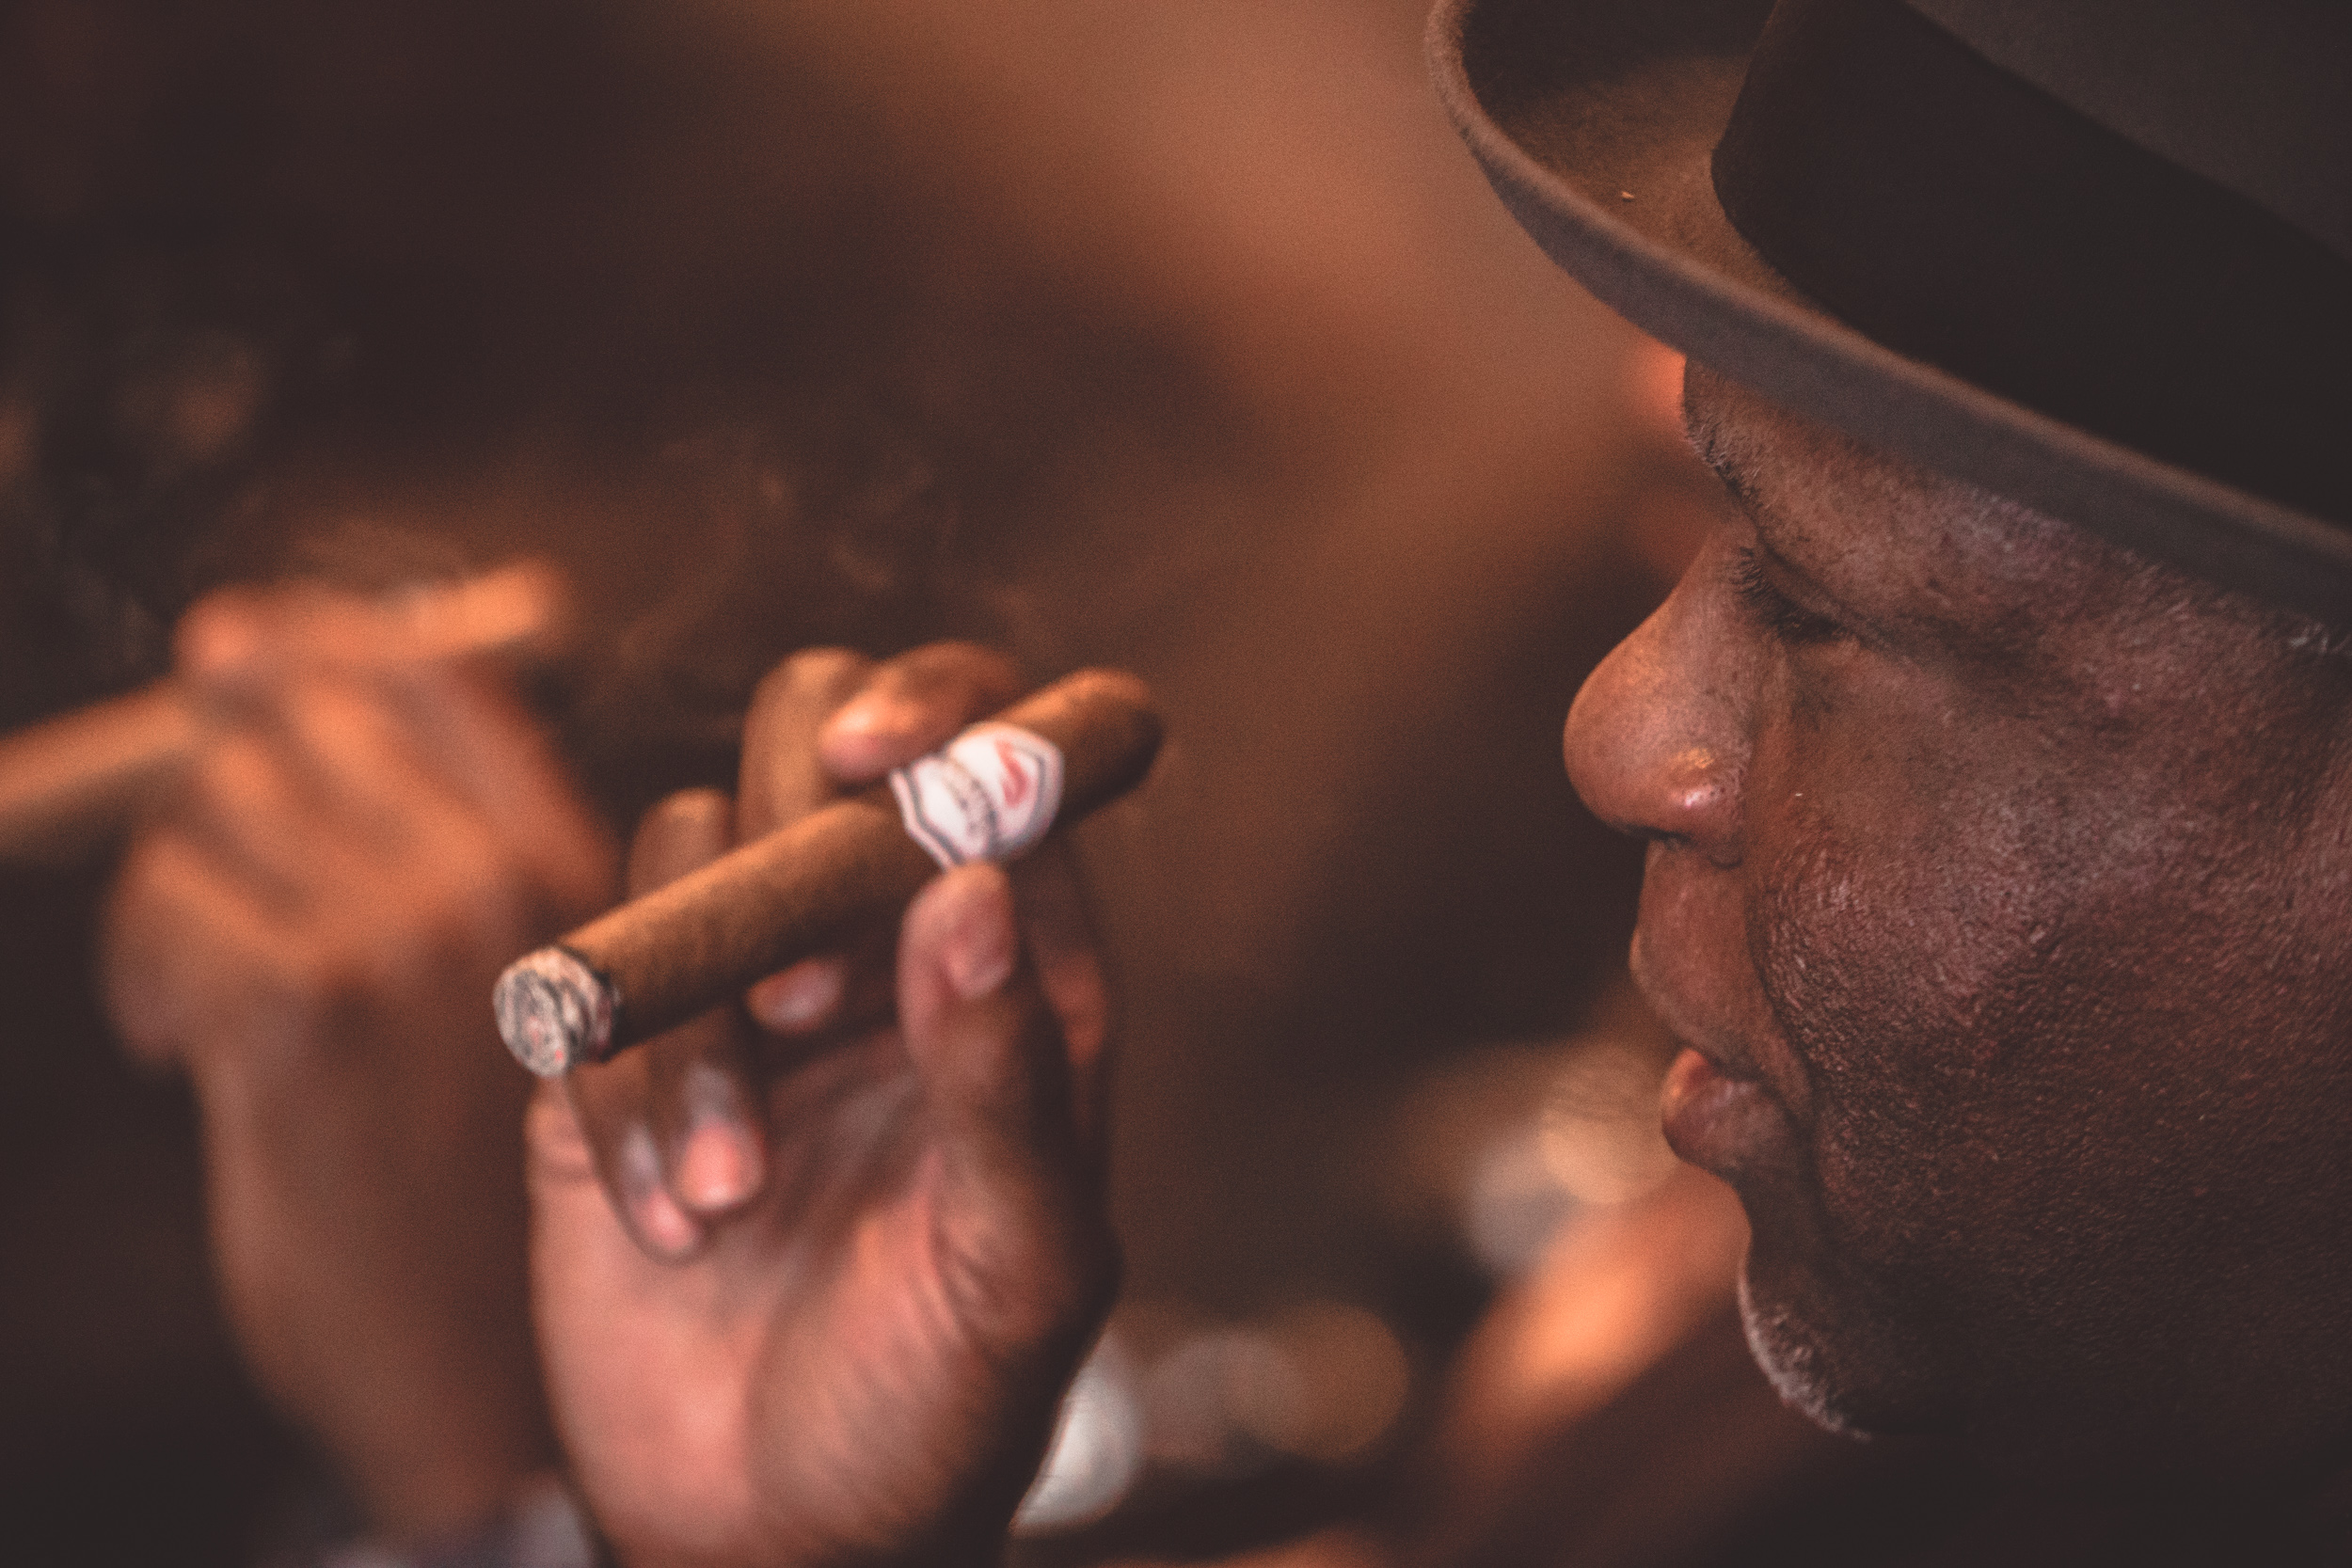 CIGARS 101 – A COMPLETE GUIDE TO THE BASICS BY TALES FROM THE LOUNGE